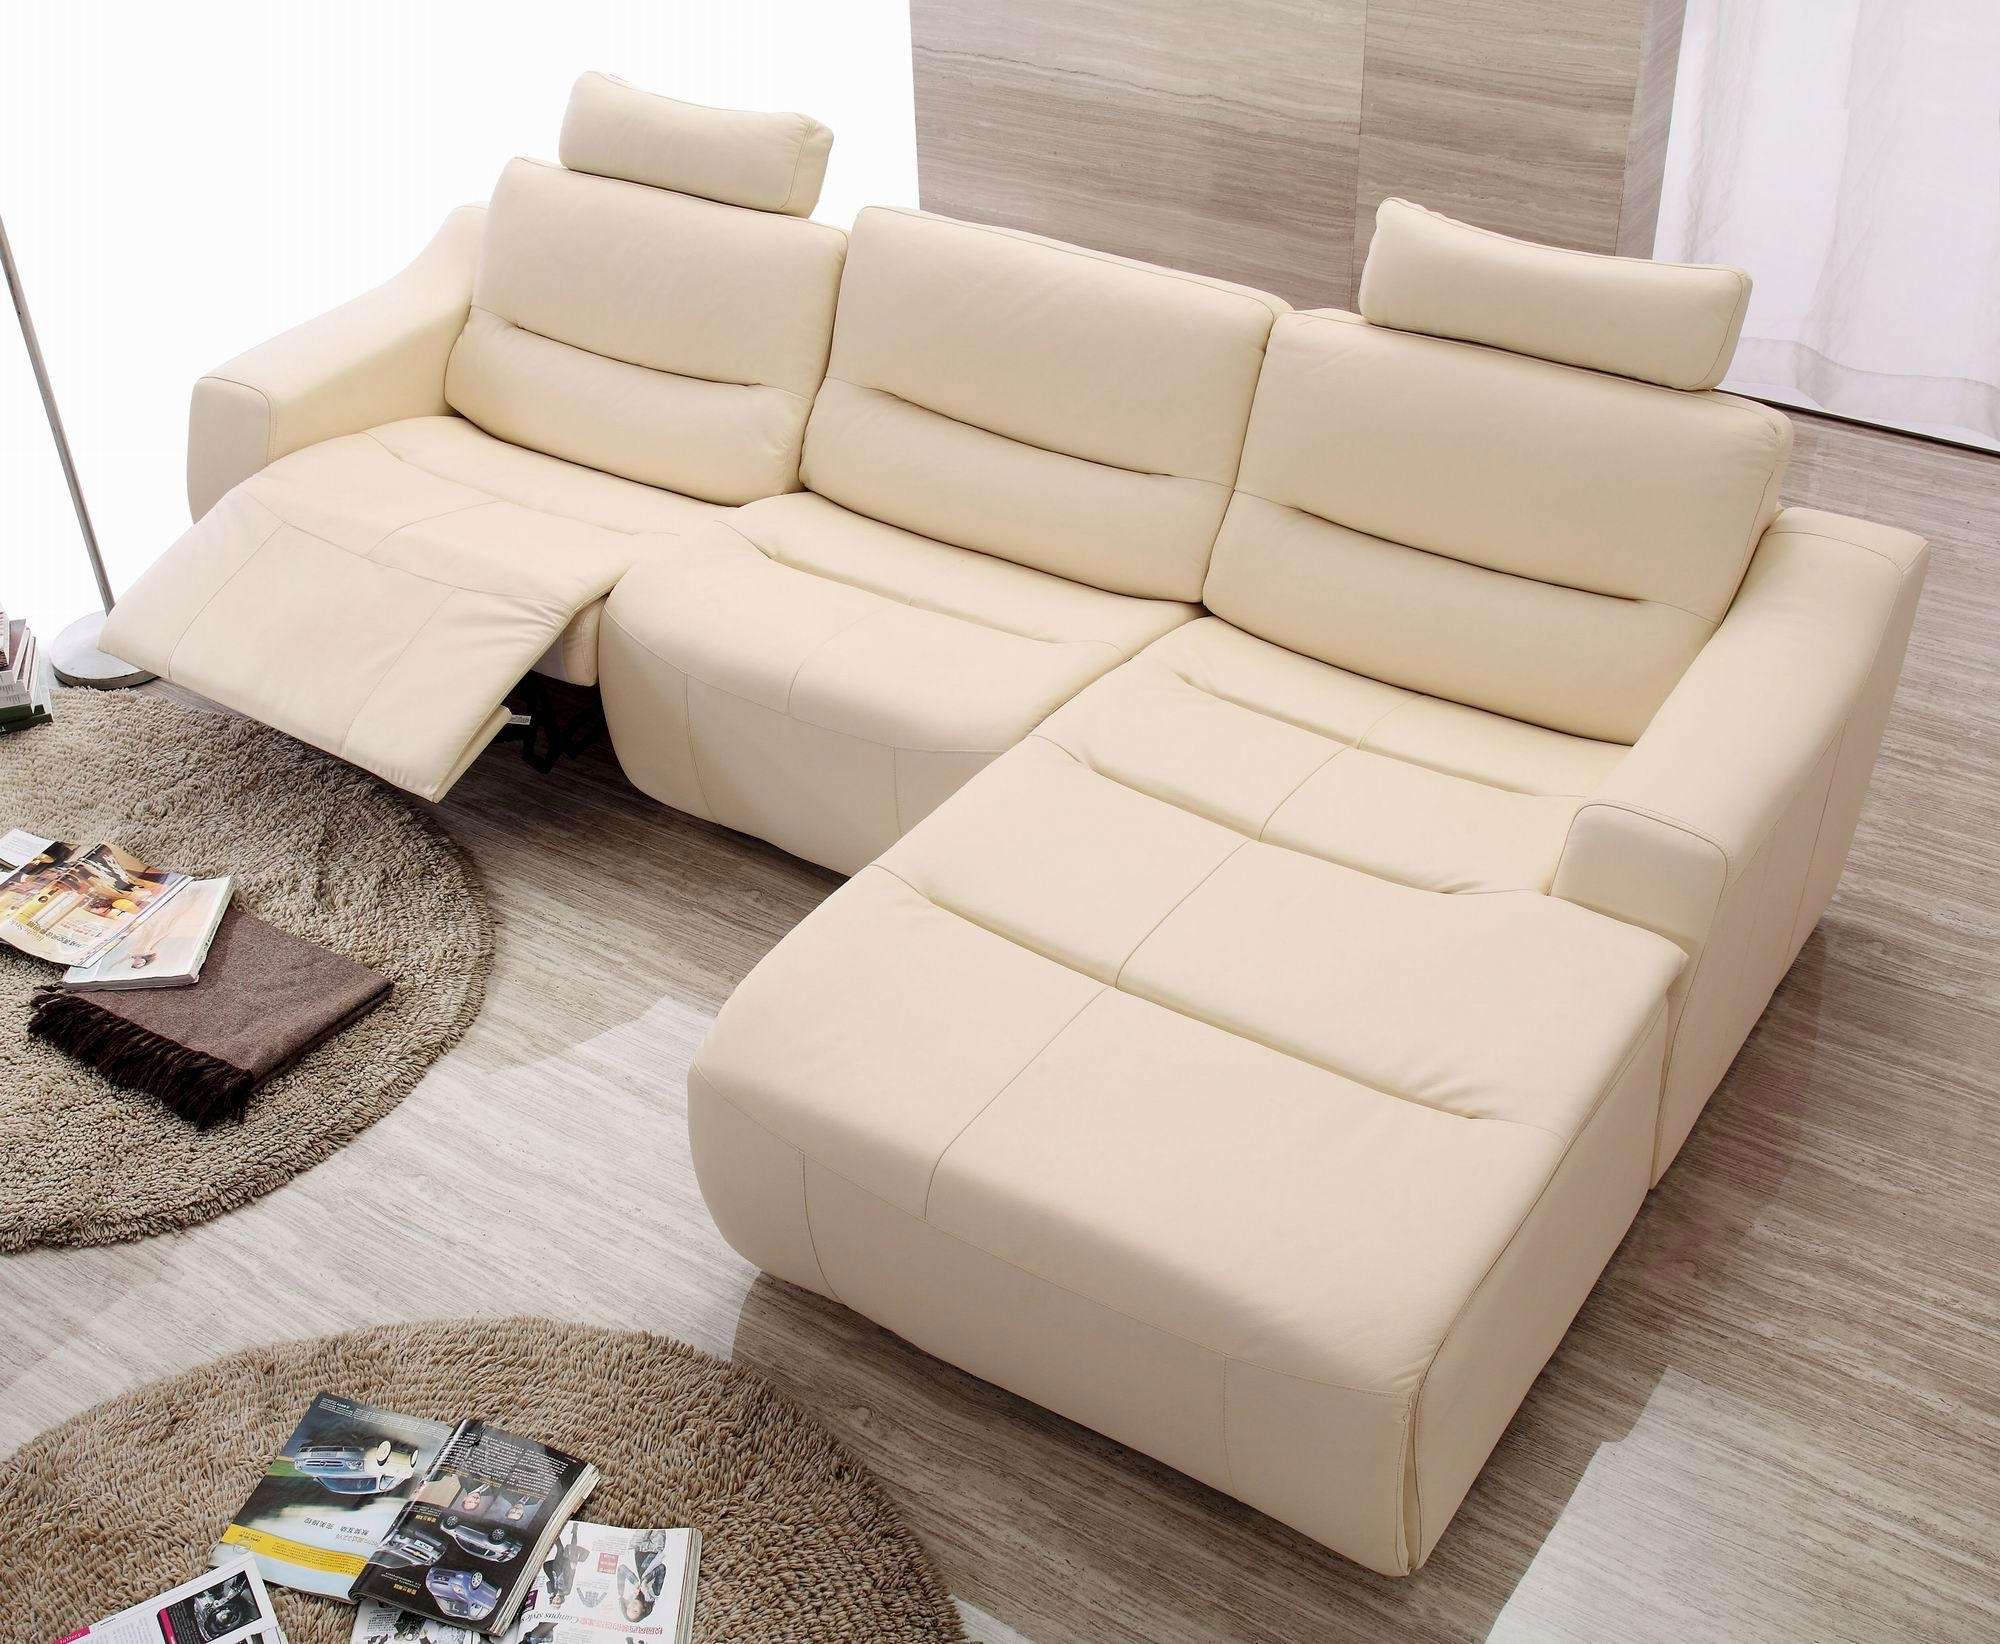 Contemporary Sectional Sofas For Small Spaces #9270 In Small Sectional Sofas For Small Spaces (View 6 of 20)